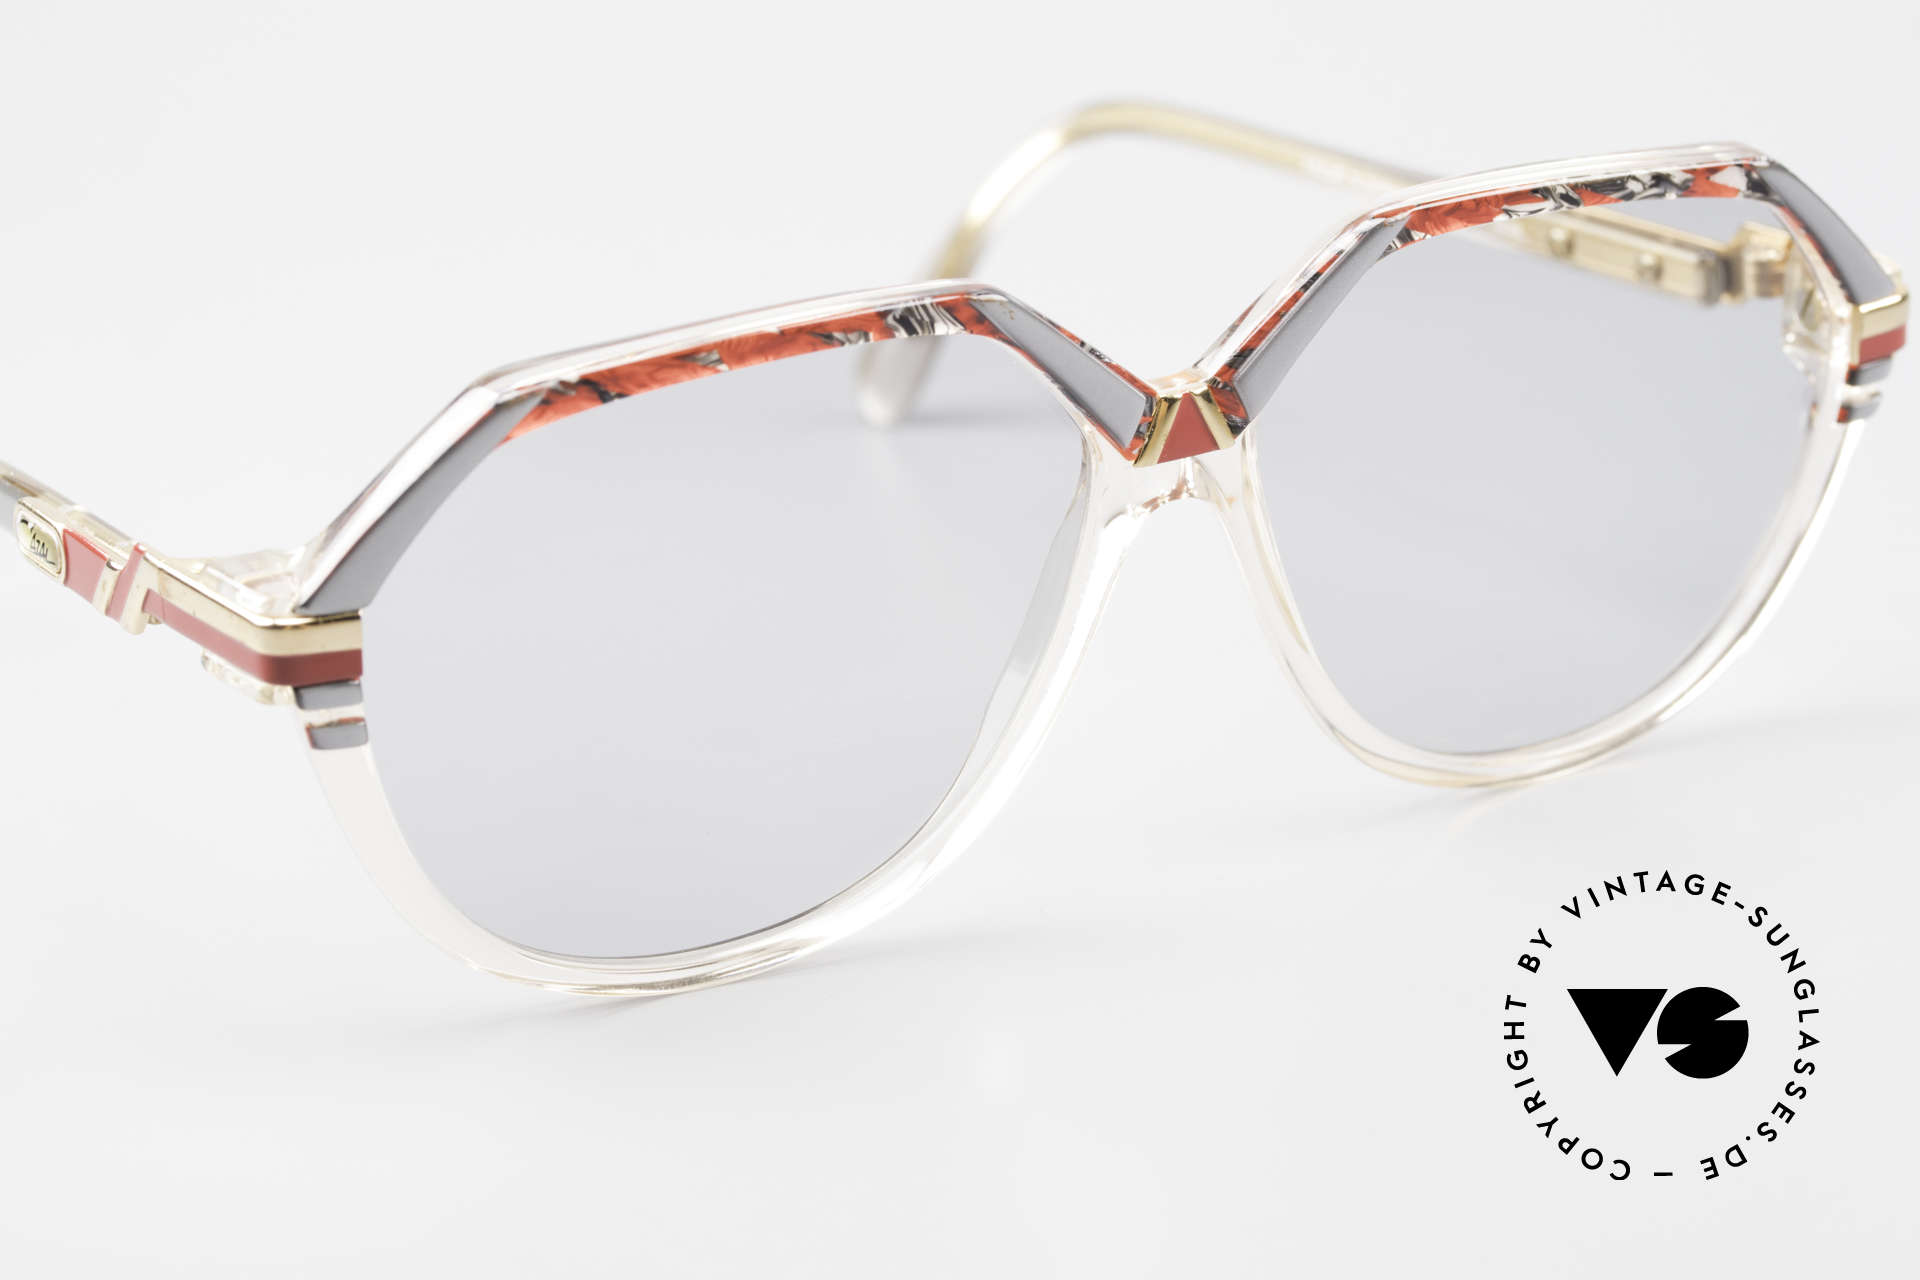 Cazal 317 Old 80's Cazal West Germany, light gray tinted sun lenses (also wearable at night), Made for Men and Women